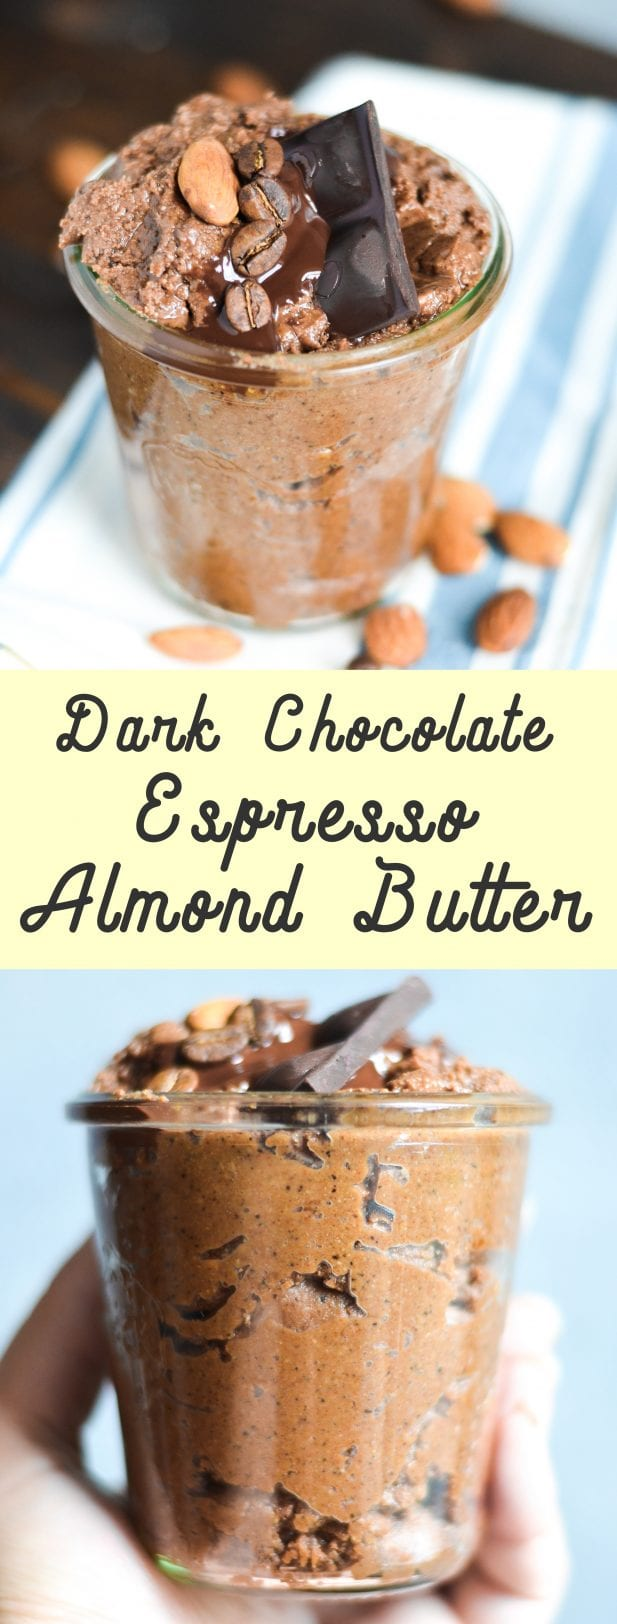 Dark Chocolate Espresso Almond Butter